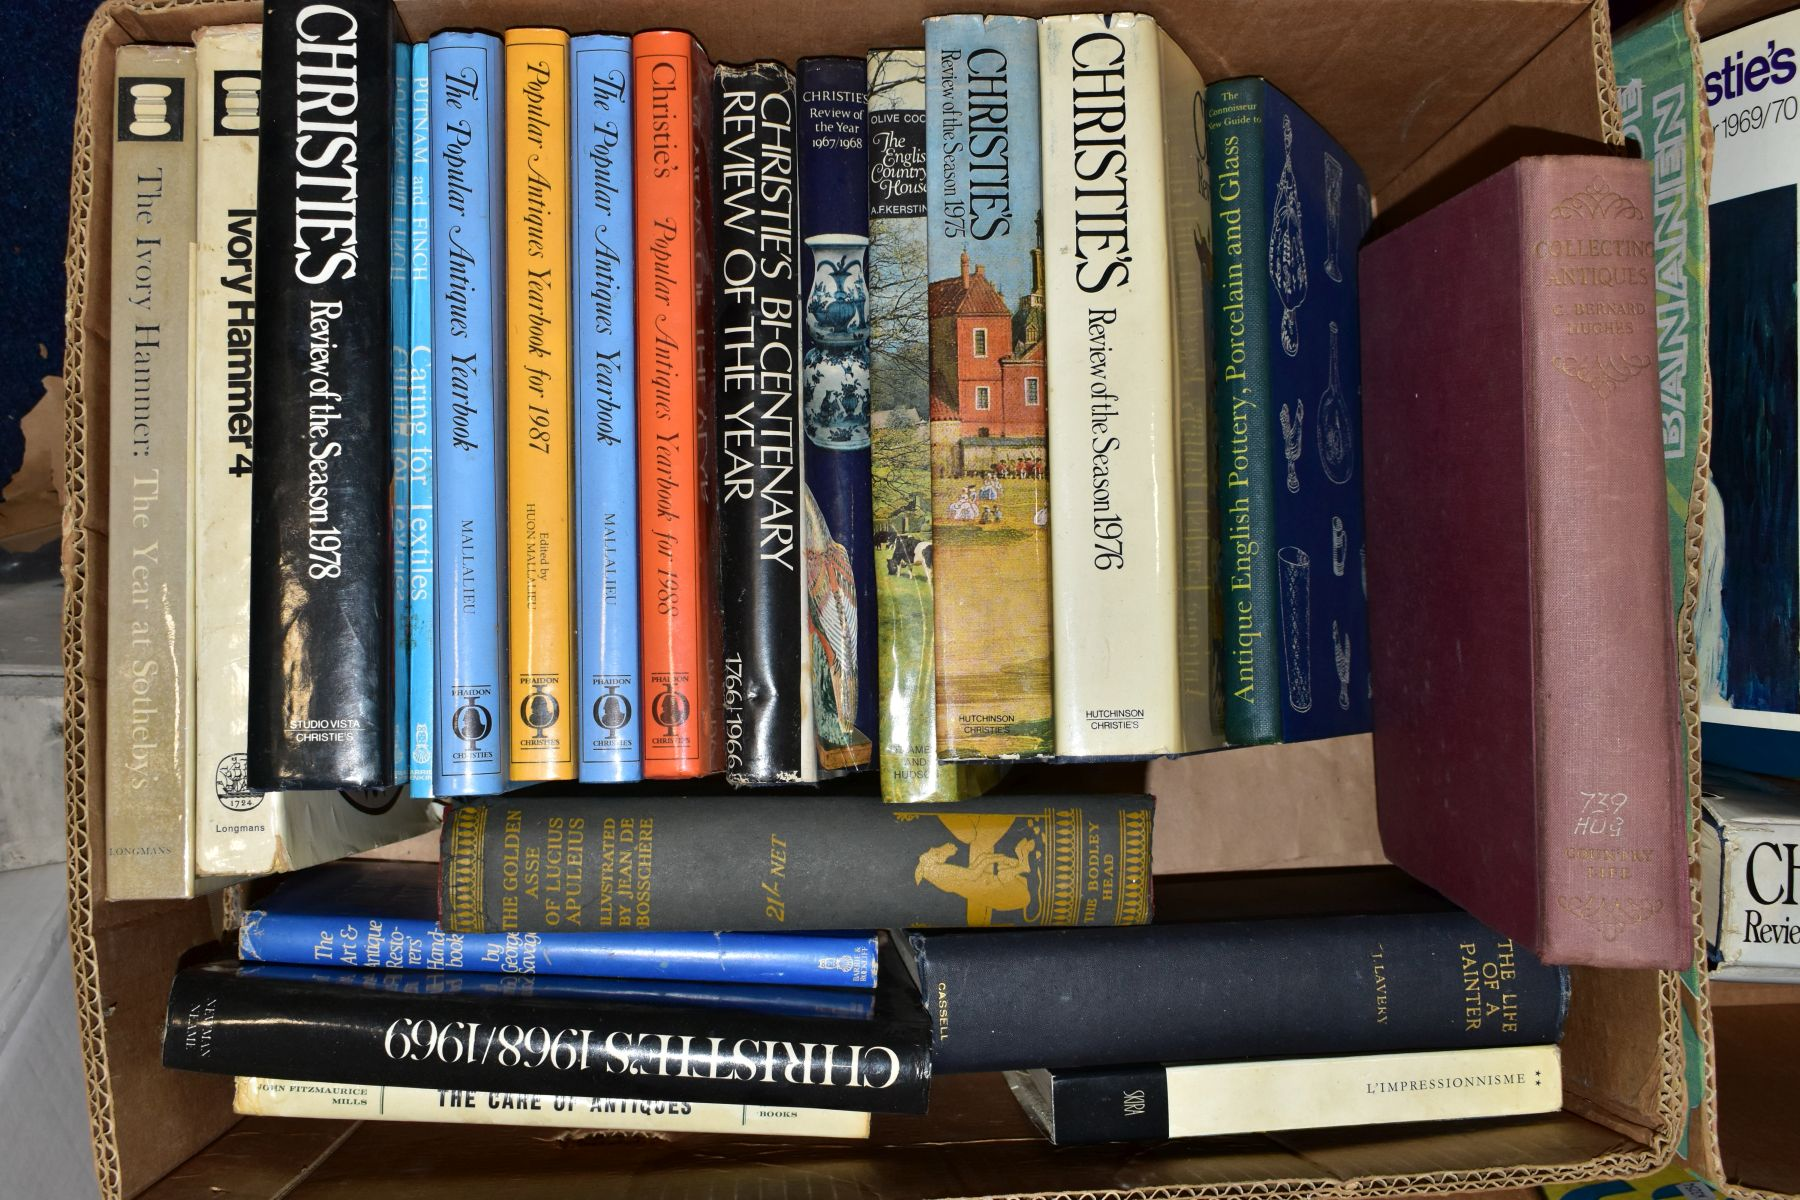 FOUR BOXES OF AUCTION REVIEW BOOKS to include Christies, The Connoiseur Year Book, Sotherbys Art - Image 3 of 6